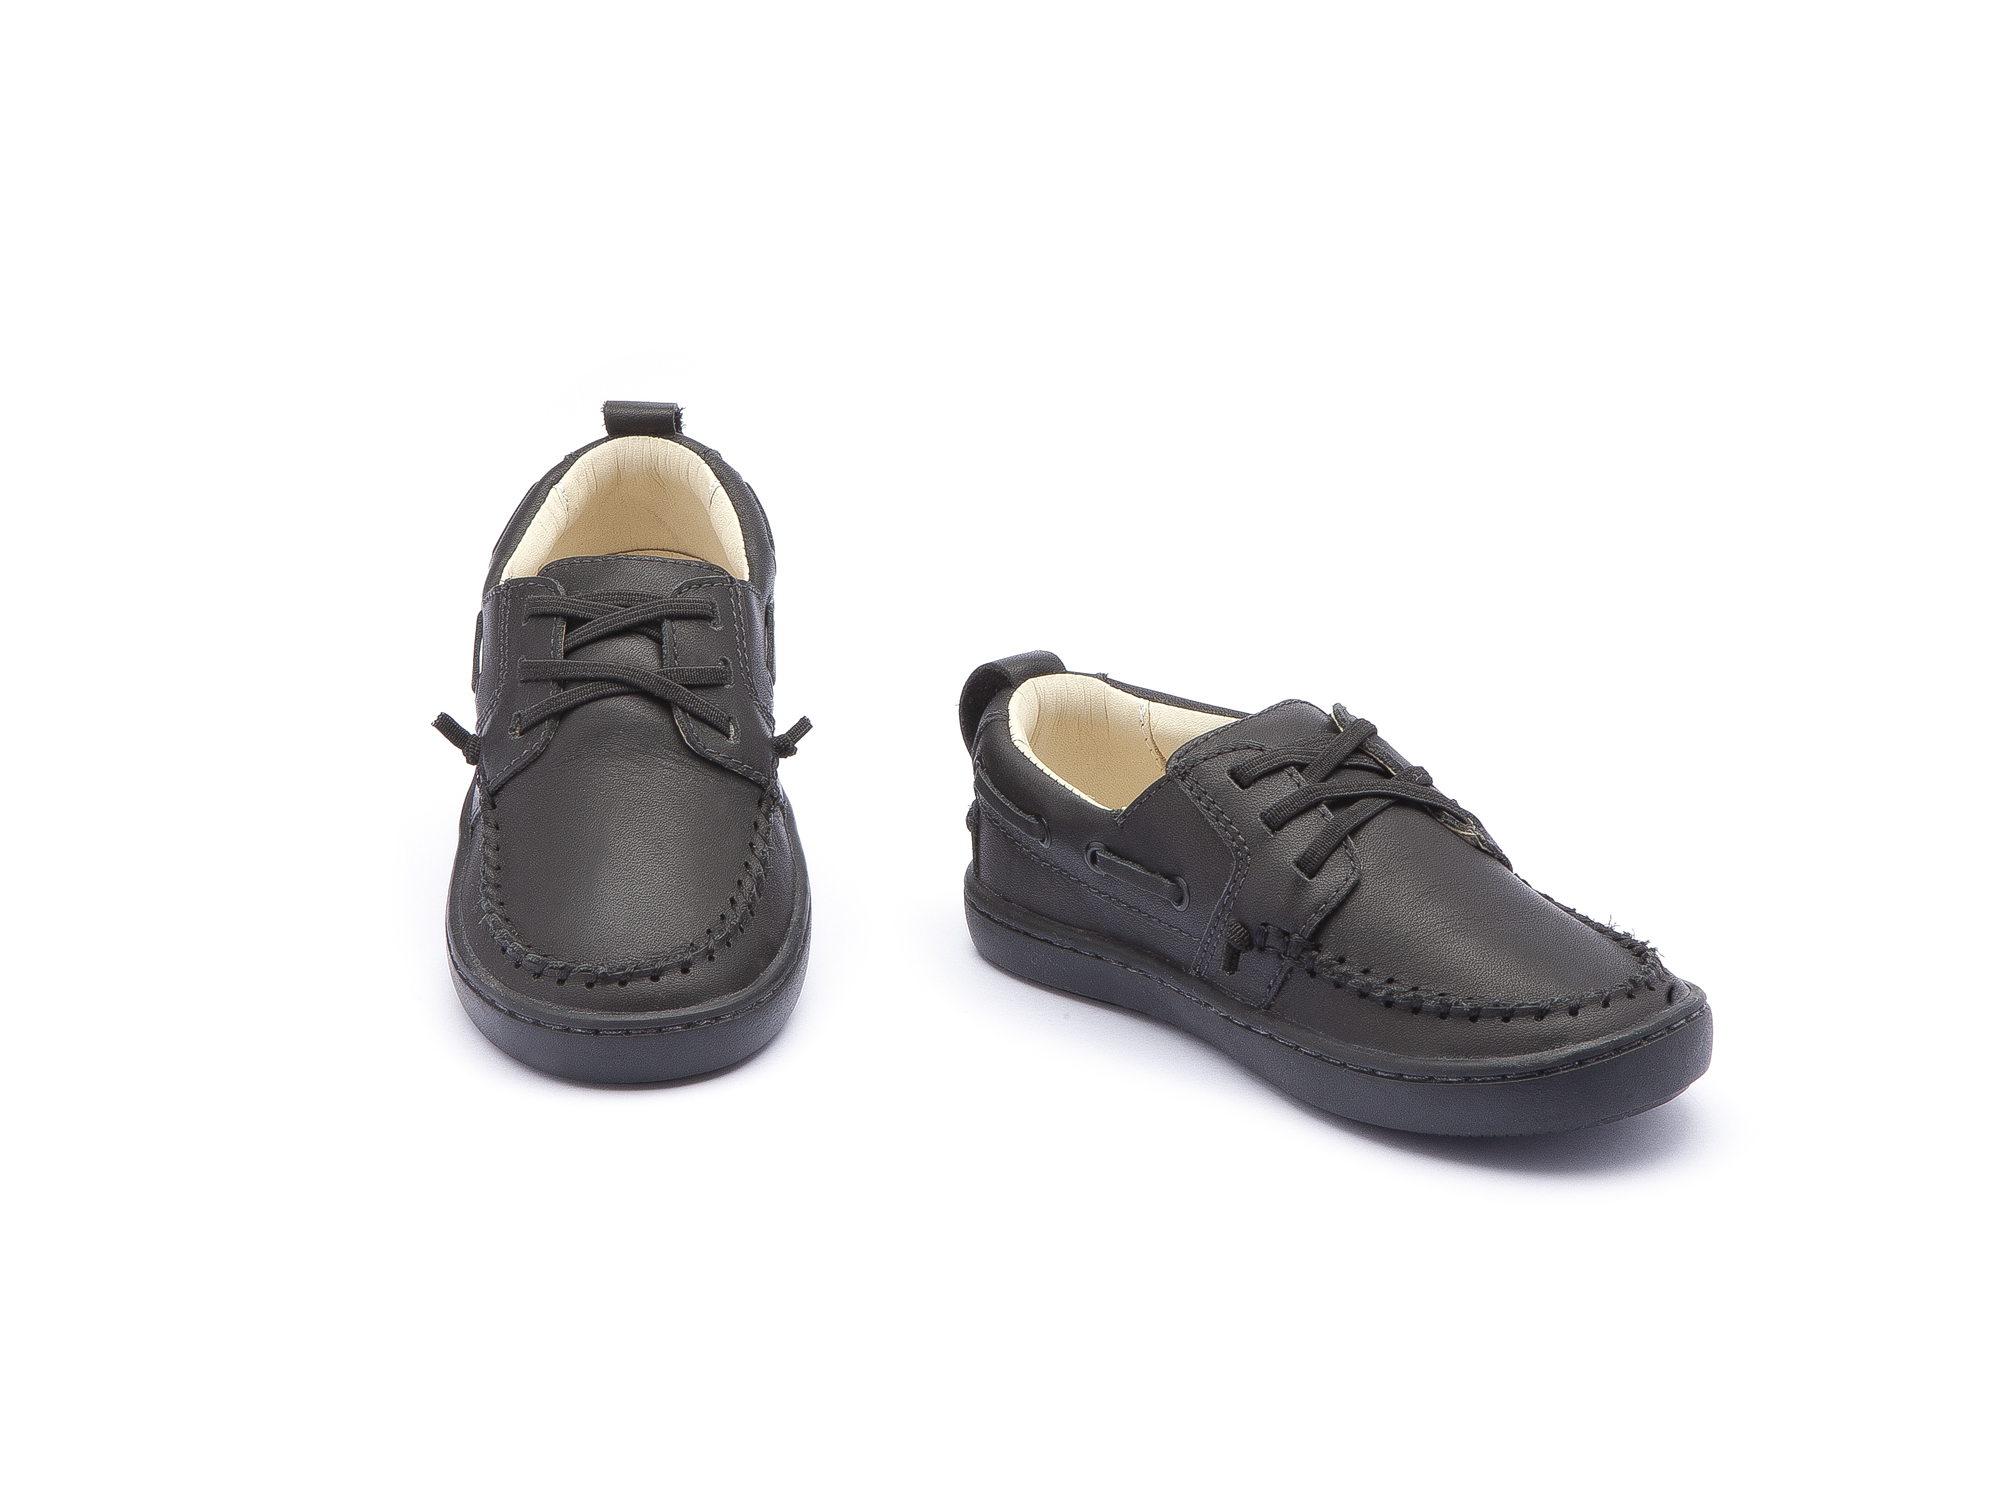 Sneaker Casual Little Snap Black Toddler 2 à 4 anos - 1